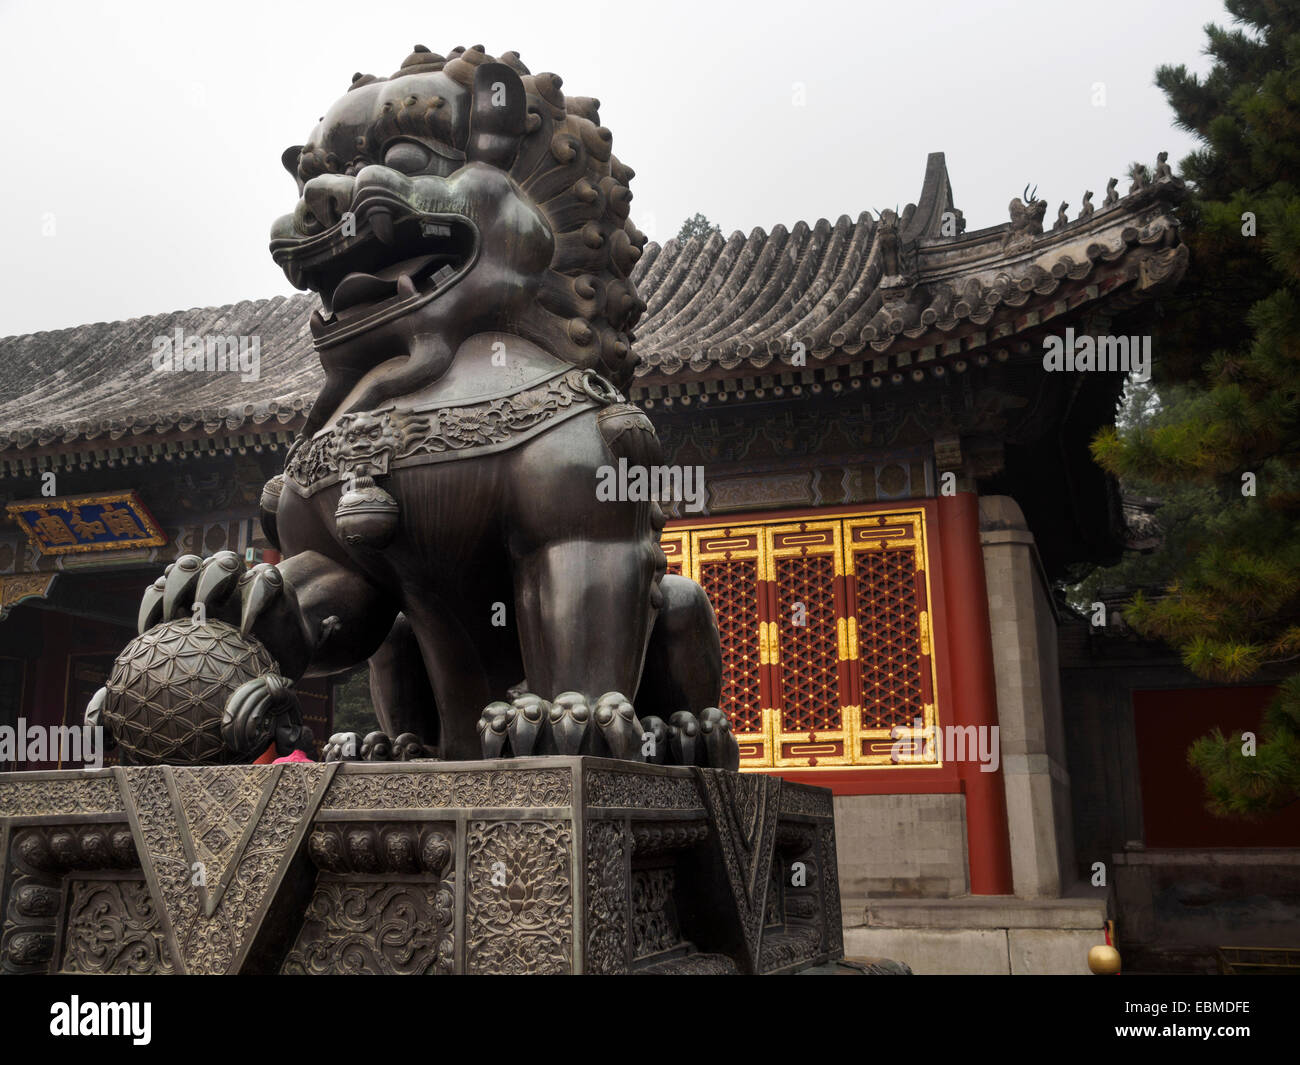 Bronze statue of Chinese guardian lions in the Summer Palace in Beijing, China - Stock Image